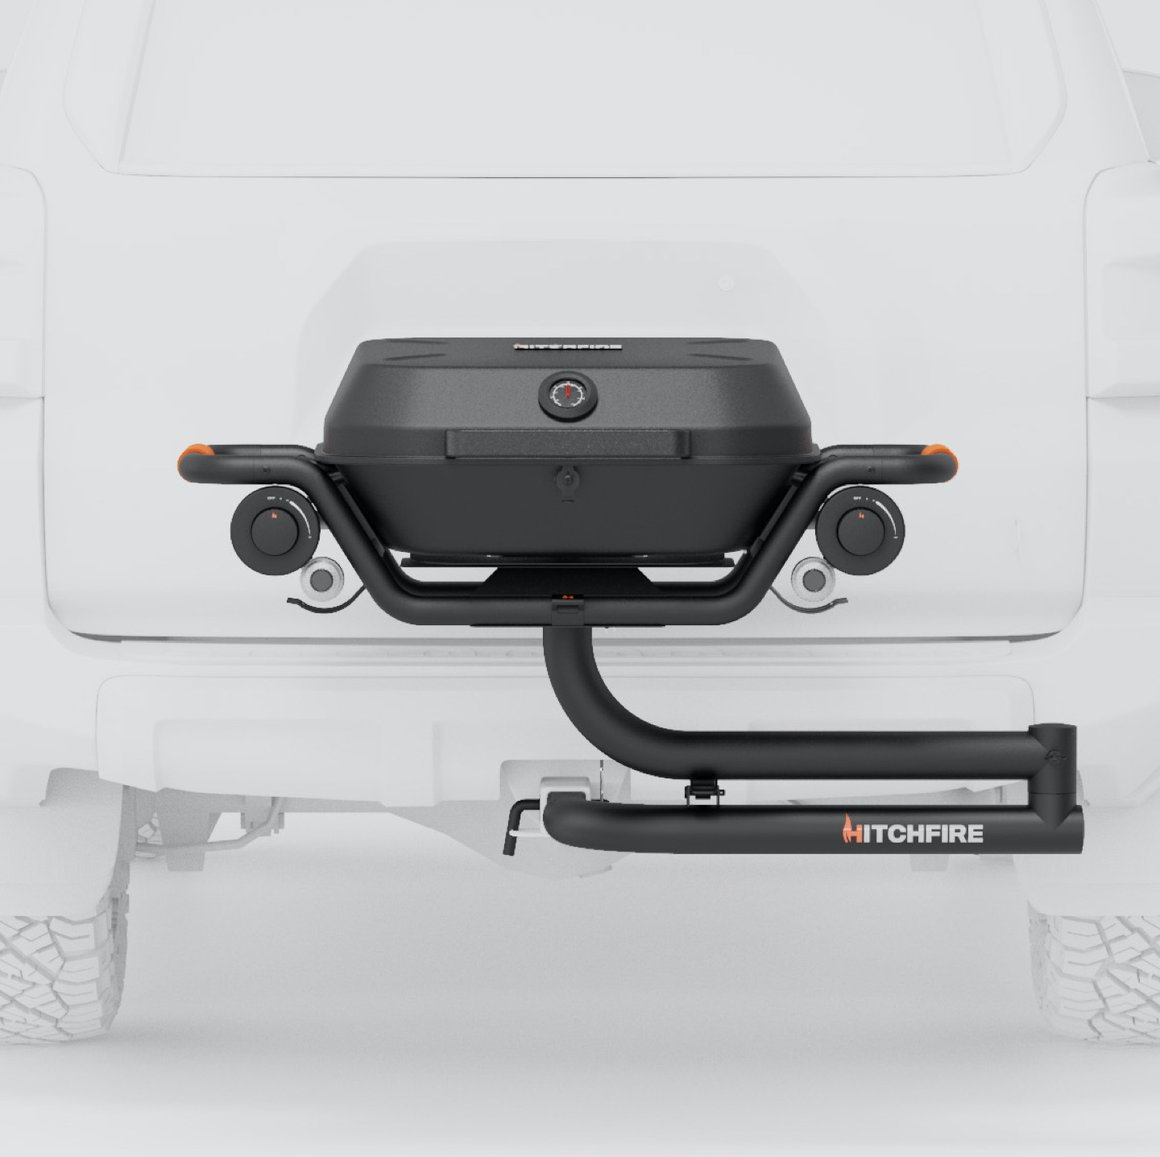 HitchFire Forge 15 Portable Grill for Adventure Grilling